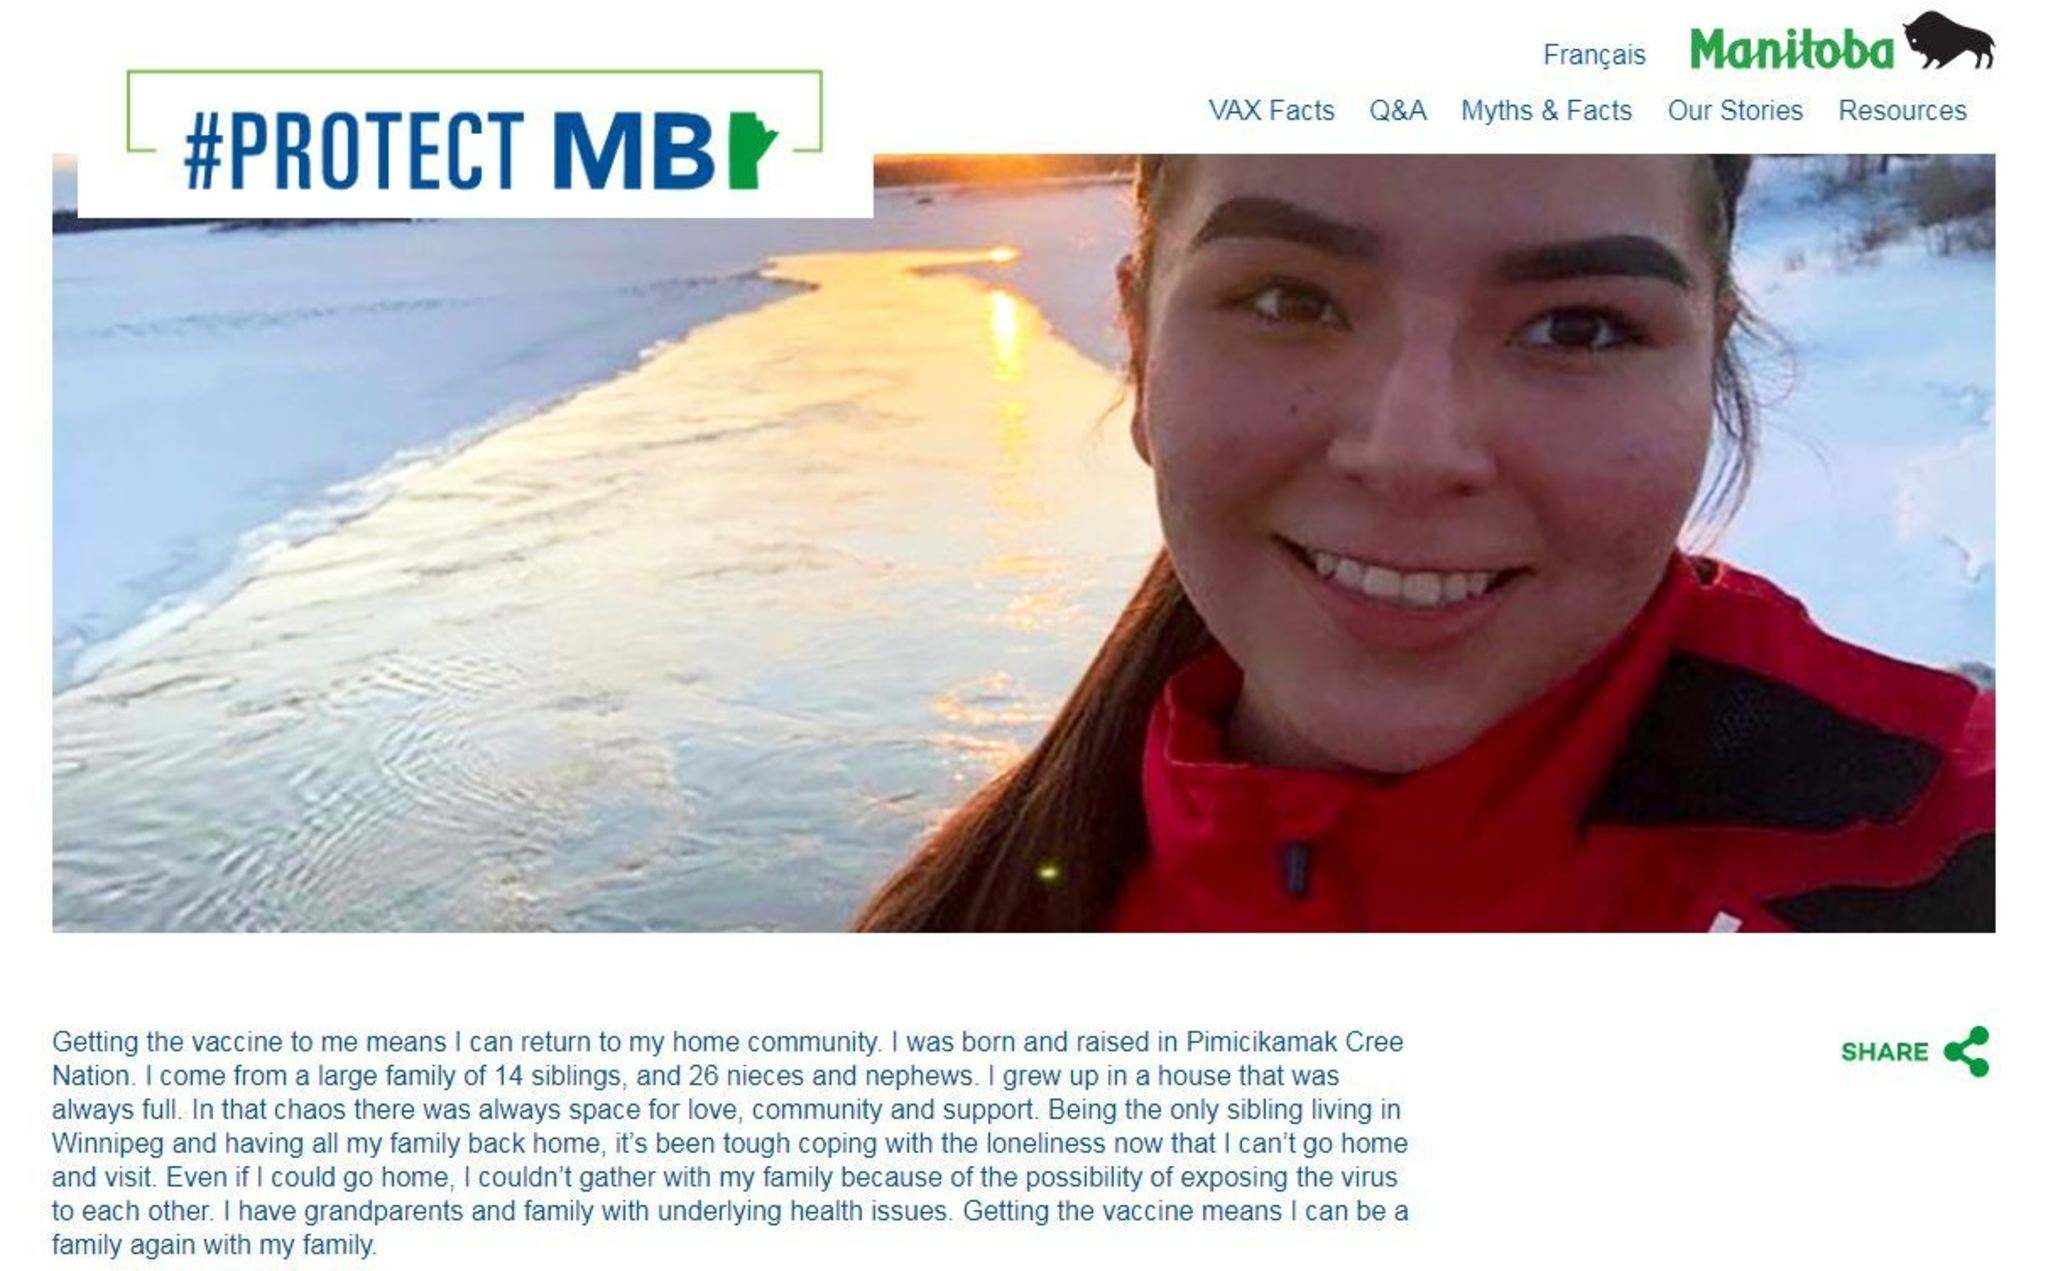 The #protectMB campaign is working to provide content designed by Indigenous partners that will resonate with their communities in different languages.